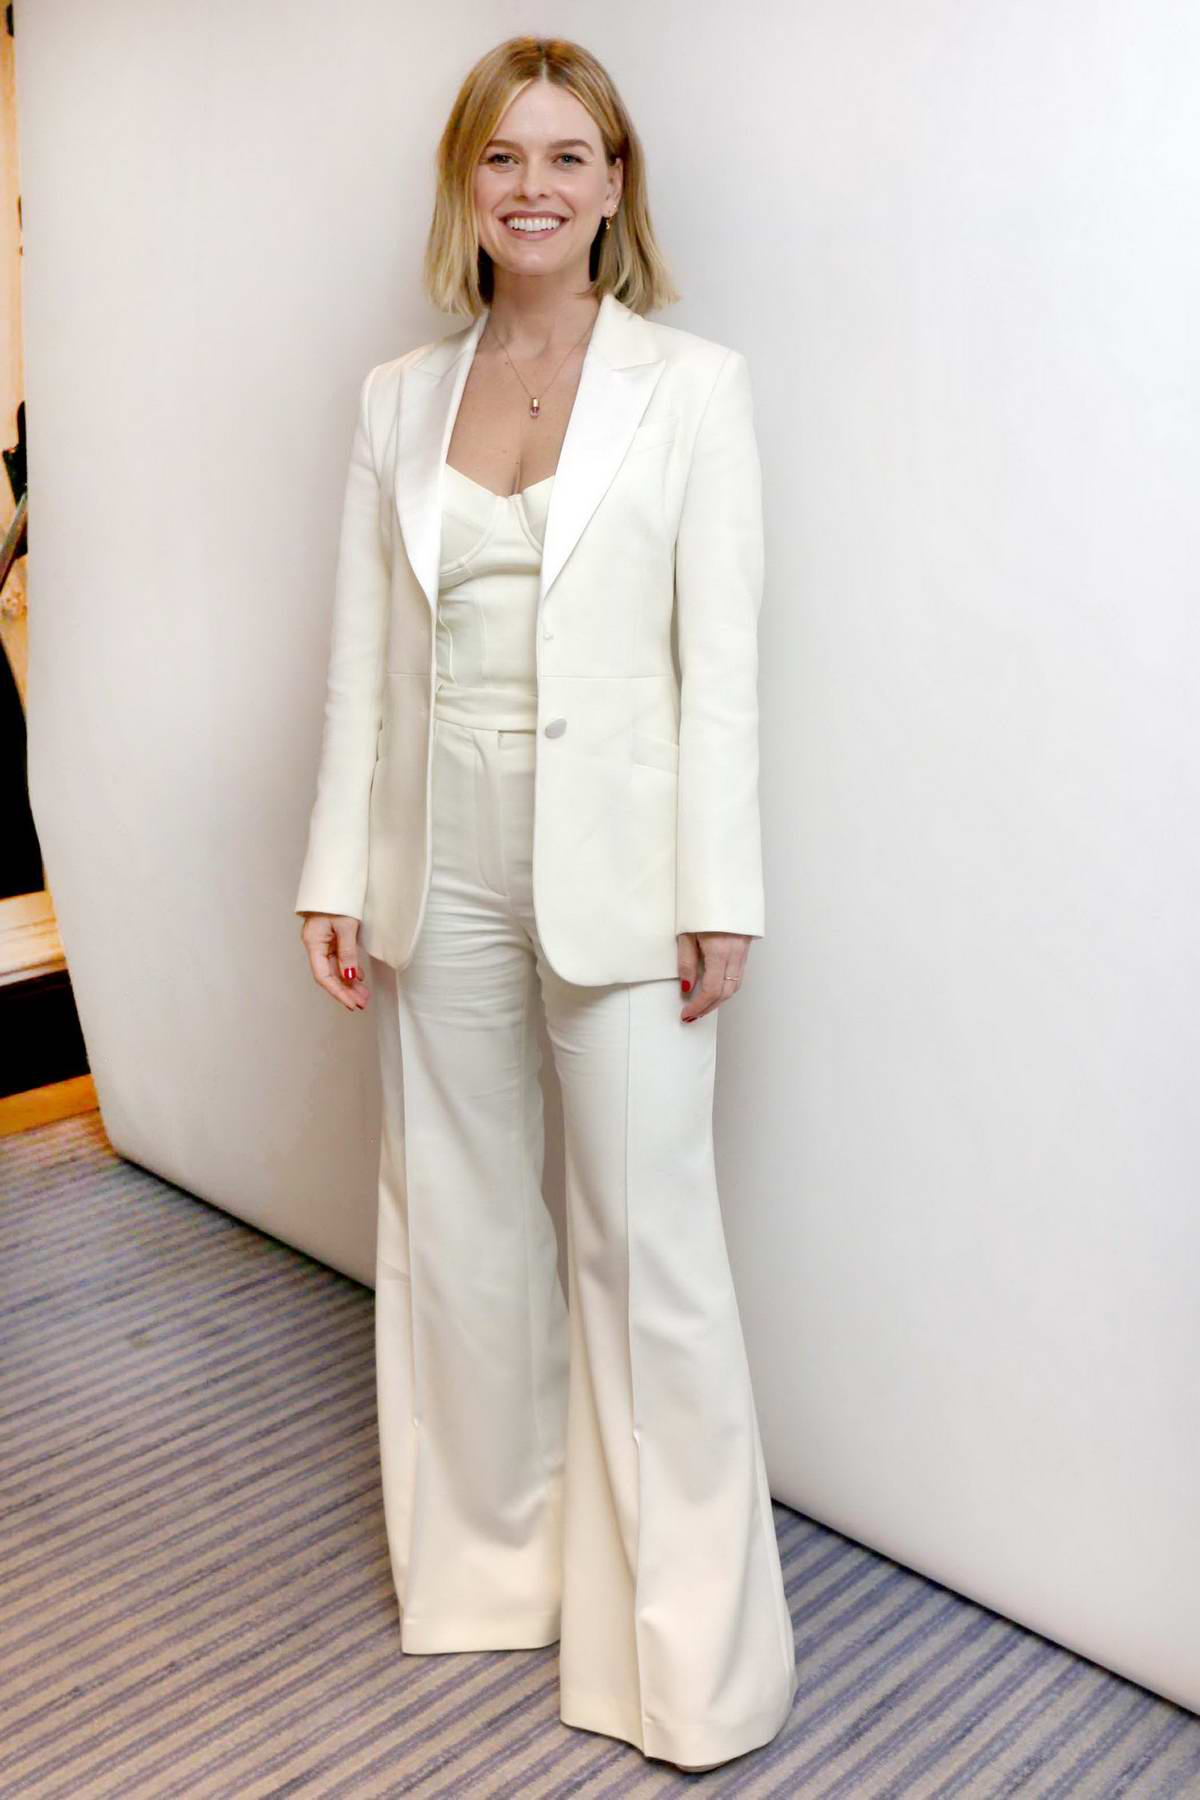 Alice Eve attends a press conference for 'Belgravia' in London, UK